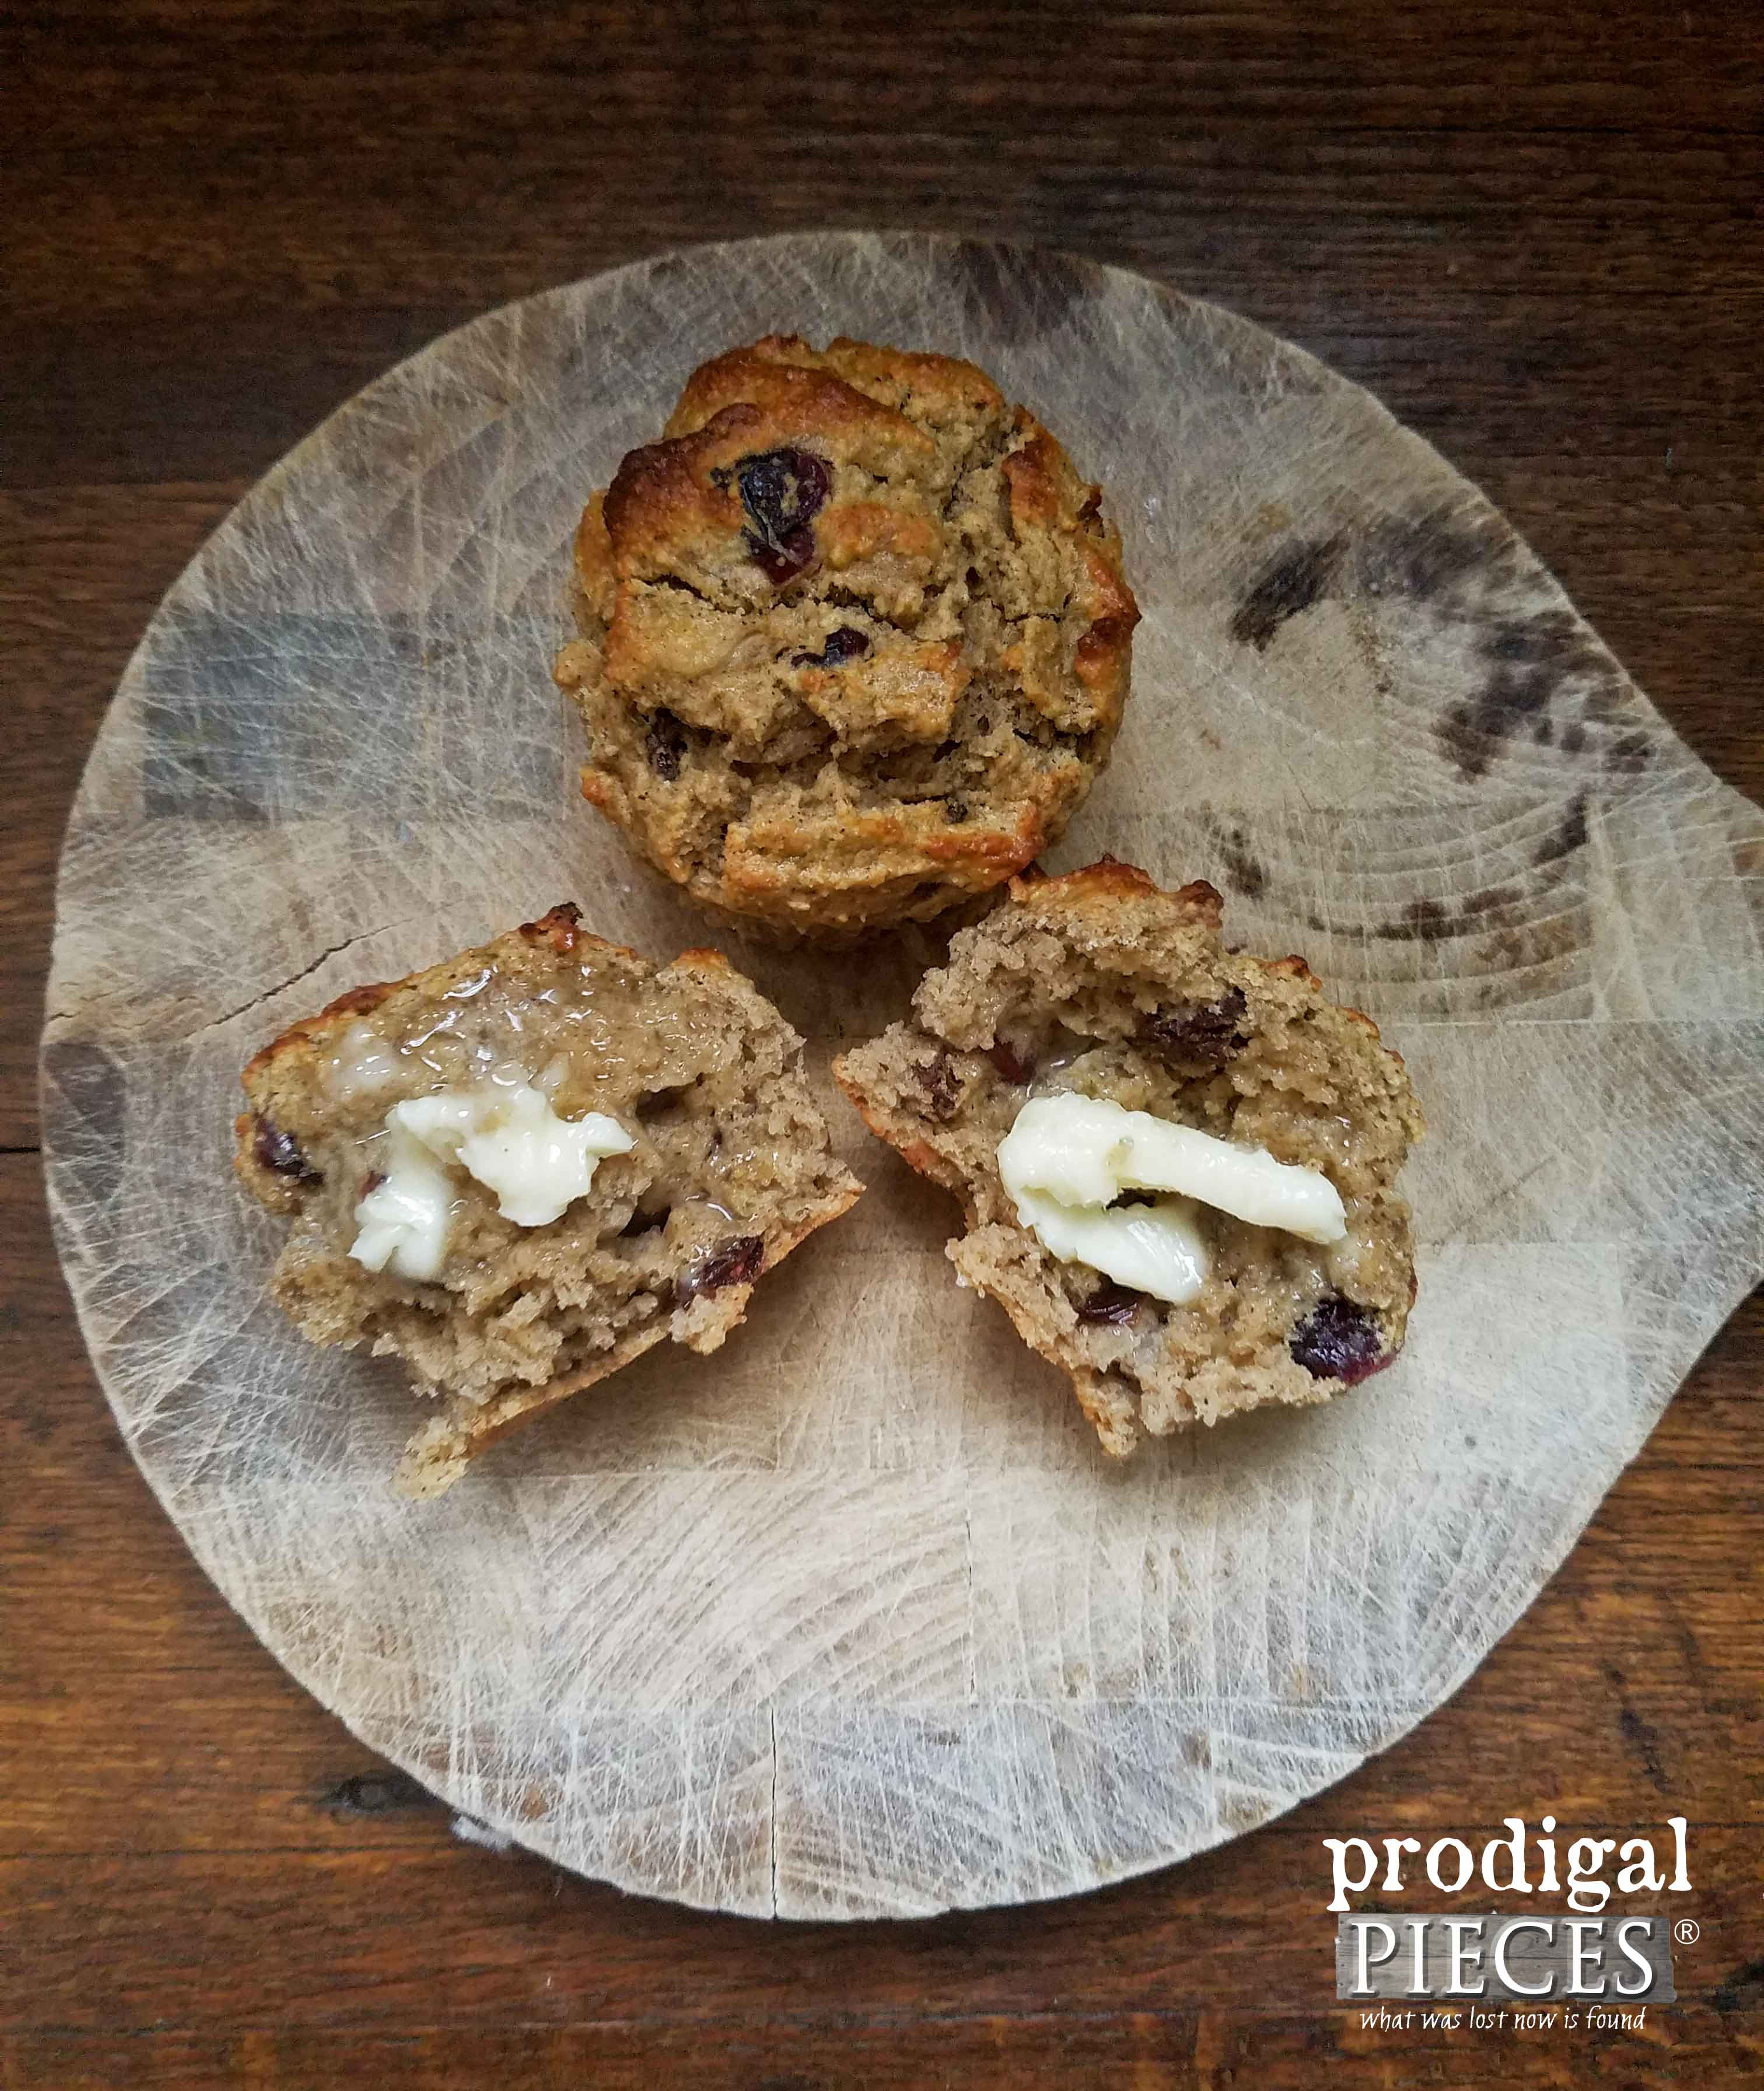 Grain-Free Cranberry Muffins for a Nourishing Breakfast Treat by Prodigal Pieces | prodigalpieces.com